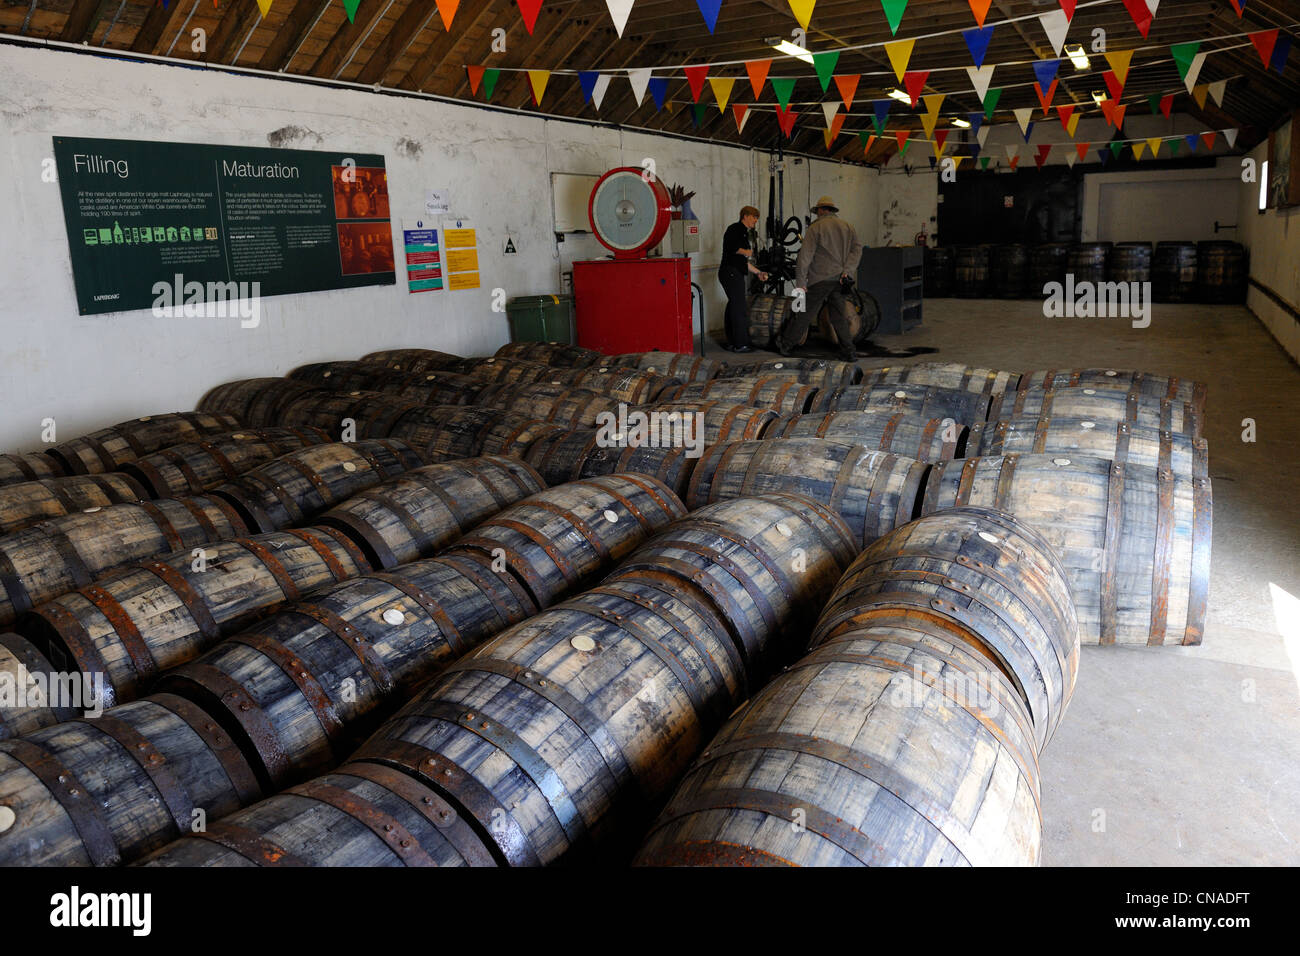 United Kingdom, Scotland, Inner Hebrides, Islay Island, Port Ellen, Laphroaig Scotch whisky distillery - Stock Image